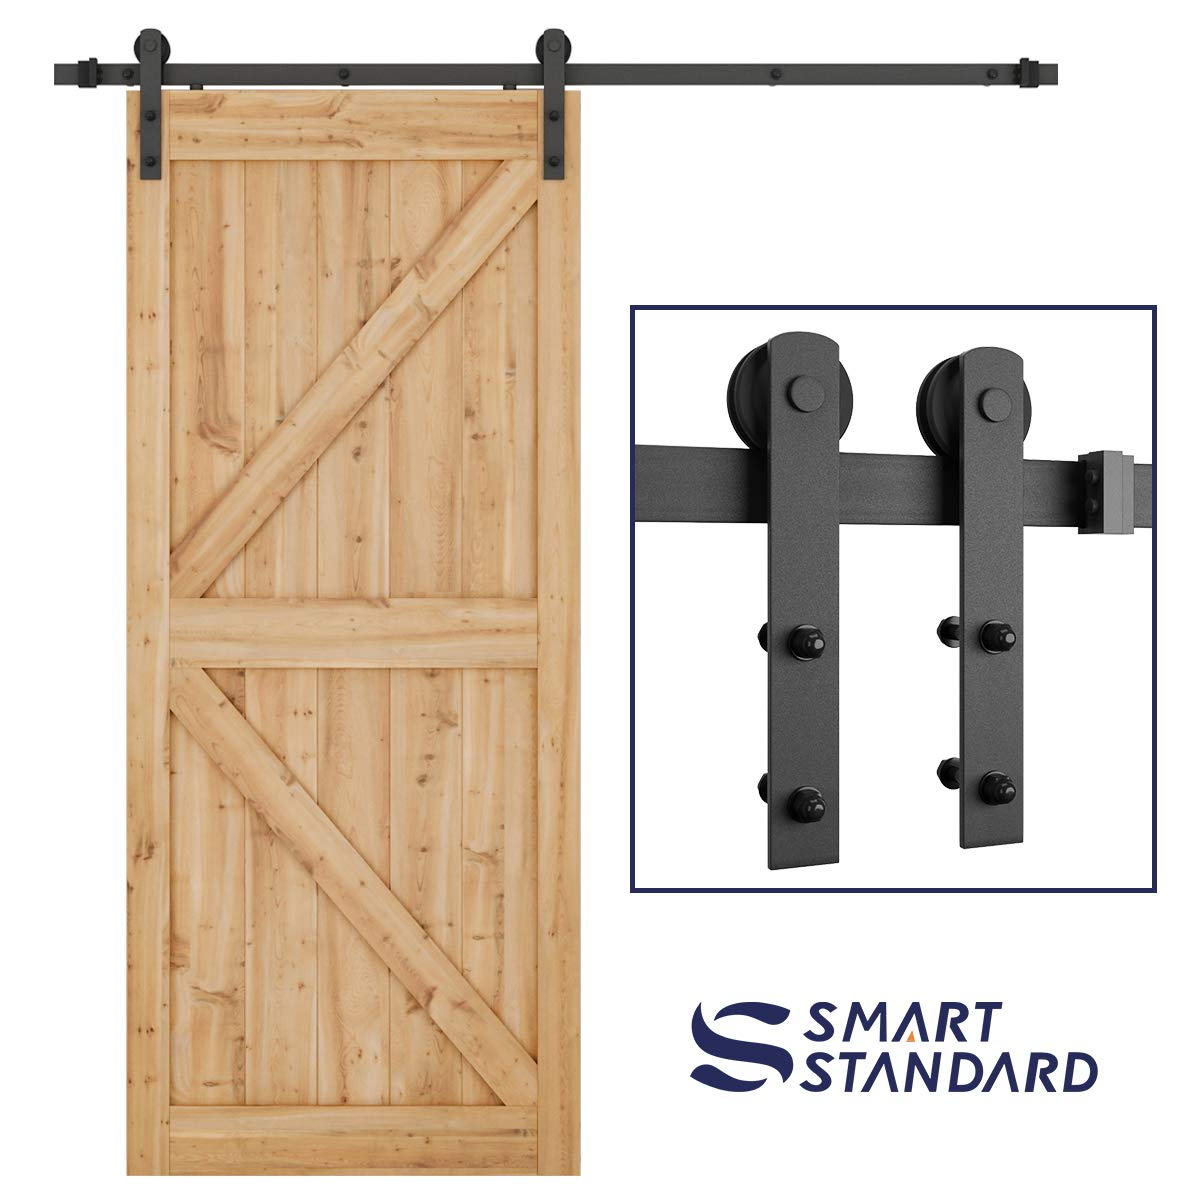 SMARTSTANDARD 6.6ft Heavy Duty Sturdy Sliding Barn Door Hardware Kit -Smoothly and Quietly -Easy to install -Includes Step-By-Step Installation Instruction Fit 36''-40'' Wide Door Panel (I Shape Hanger)